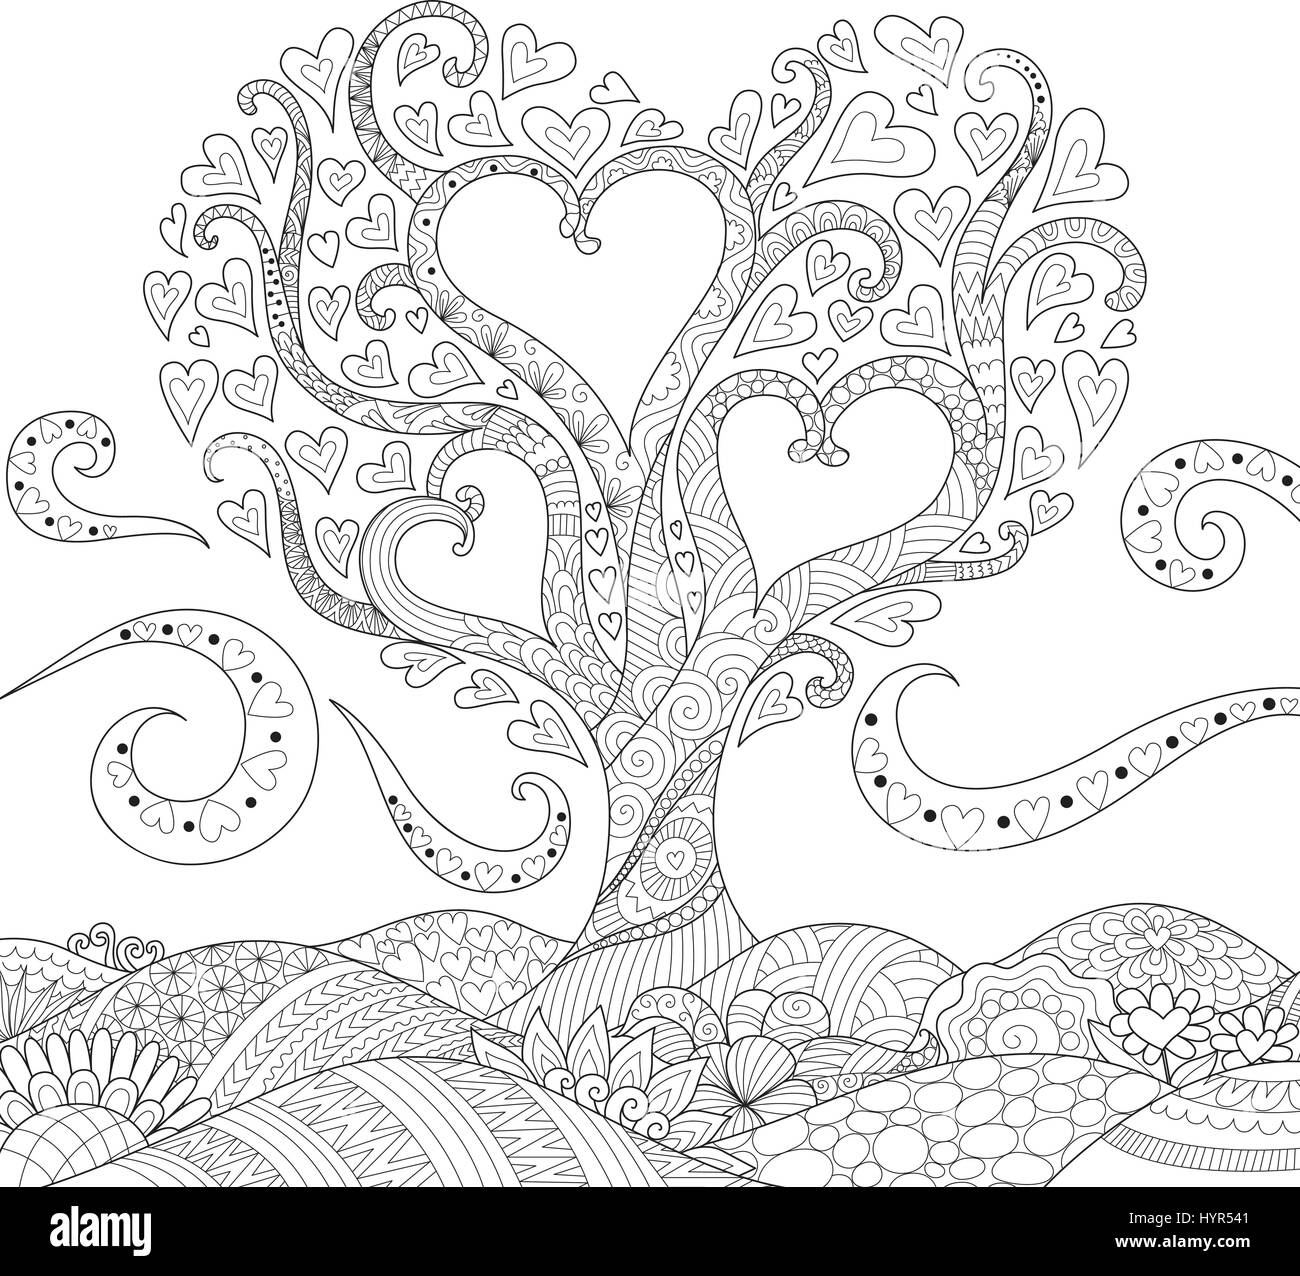 Coloriage Arbre Anti Stress.Coloring Vector Vectors Photos Coloring Vector Vectors Images Alamy